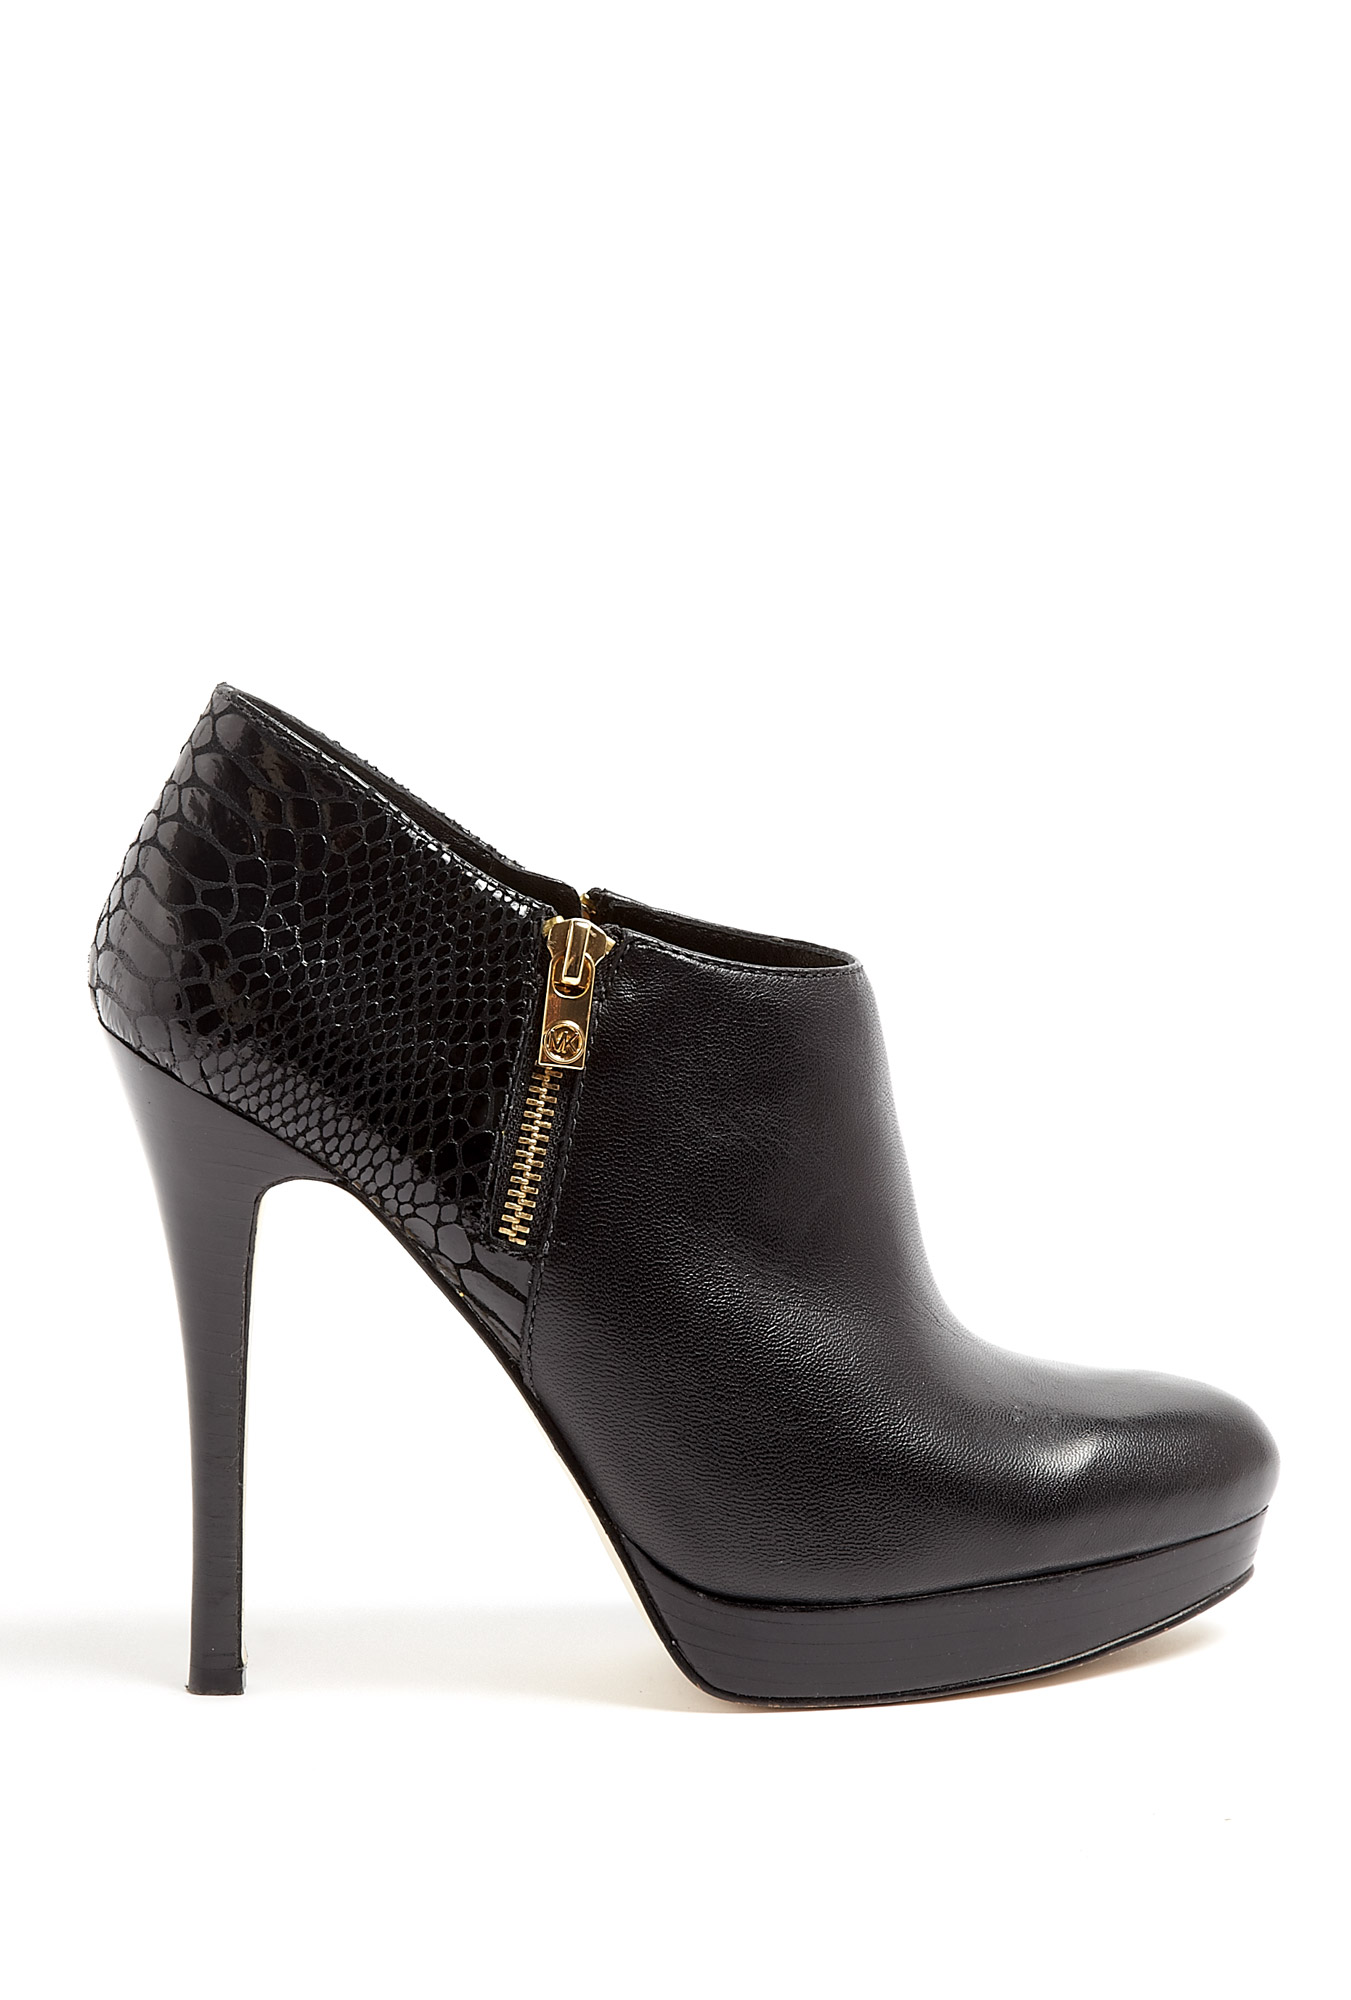 Michael Michael Kors Black Leather And Patent Python York